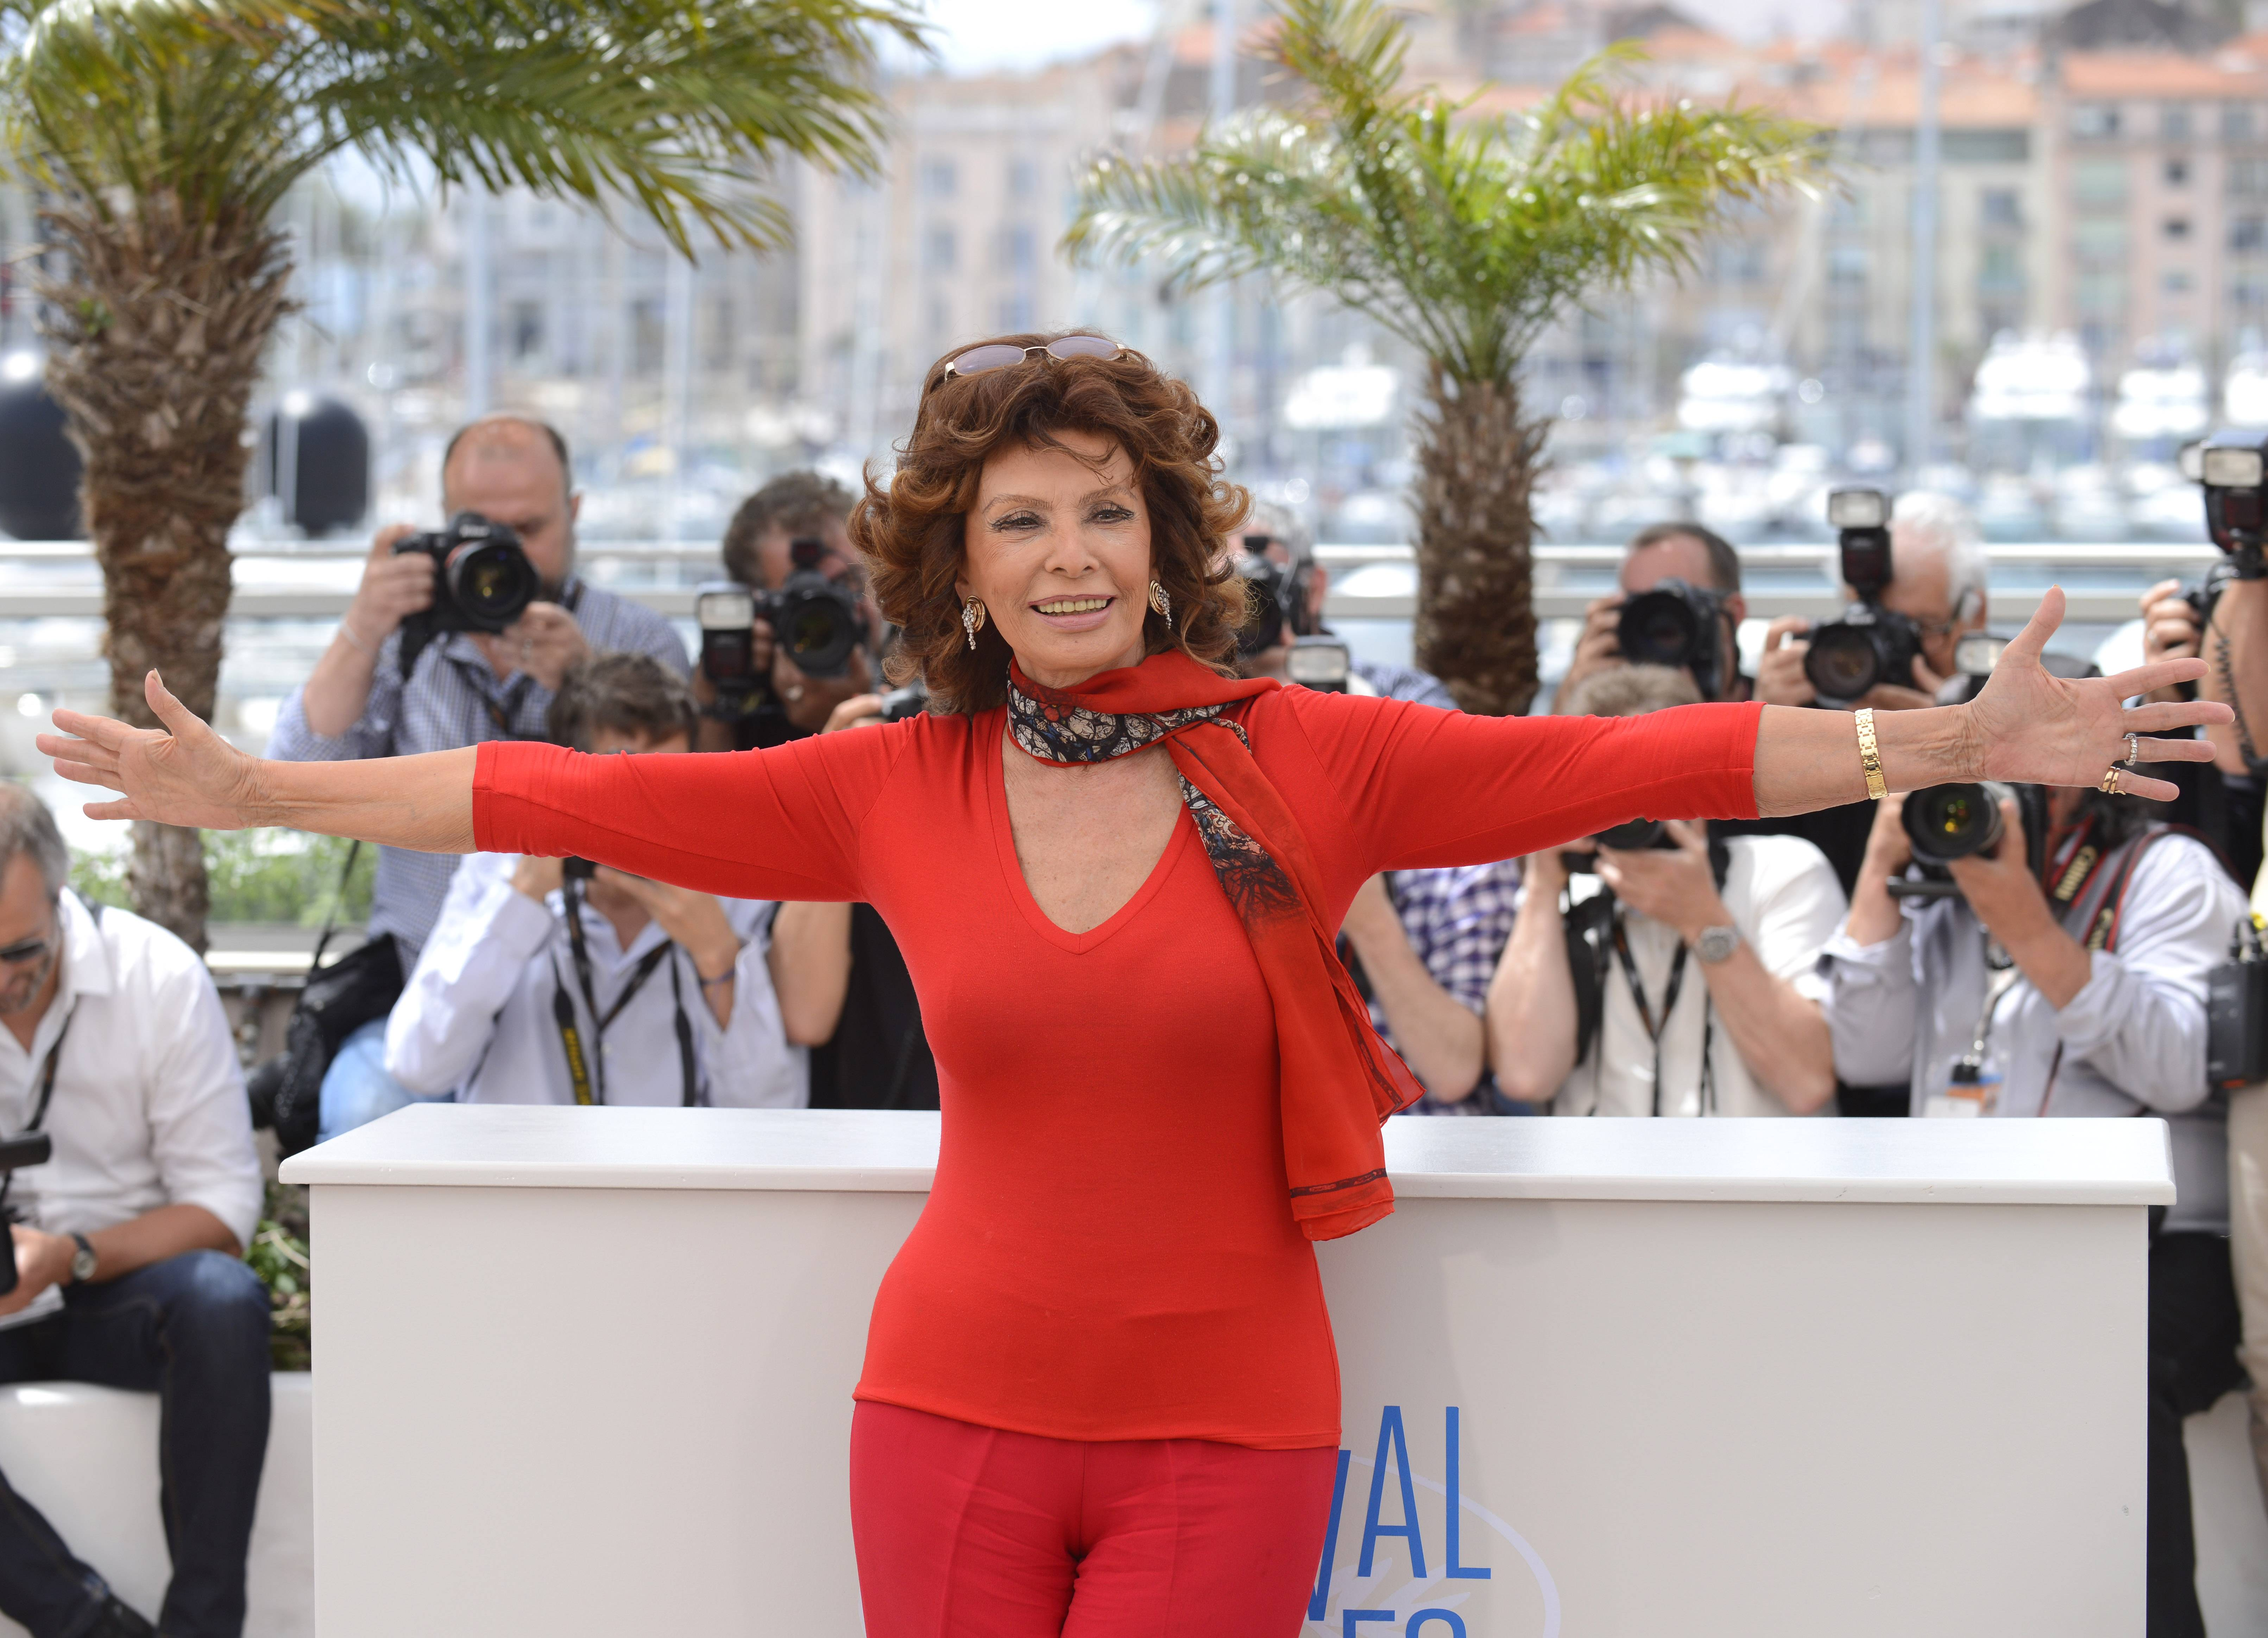 Lester: After 10-year quest, Onesti lures Sophia Loren to appear